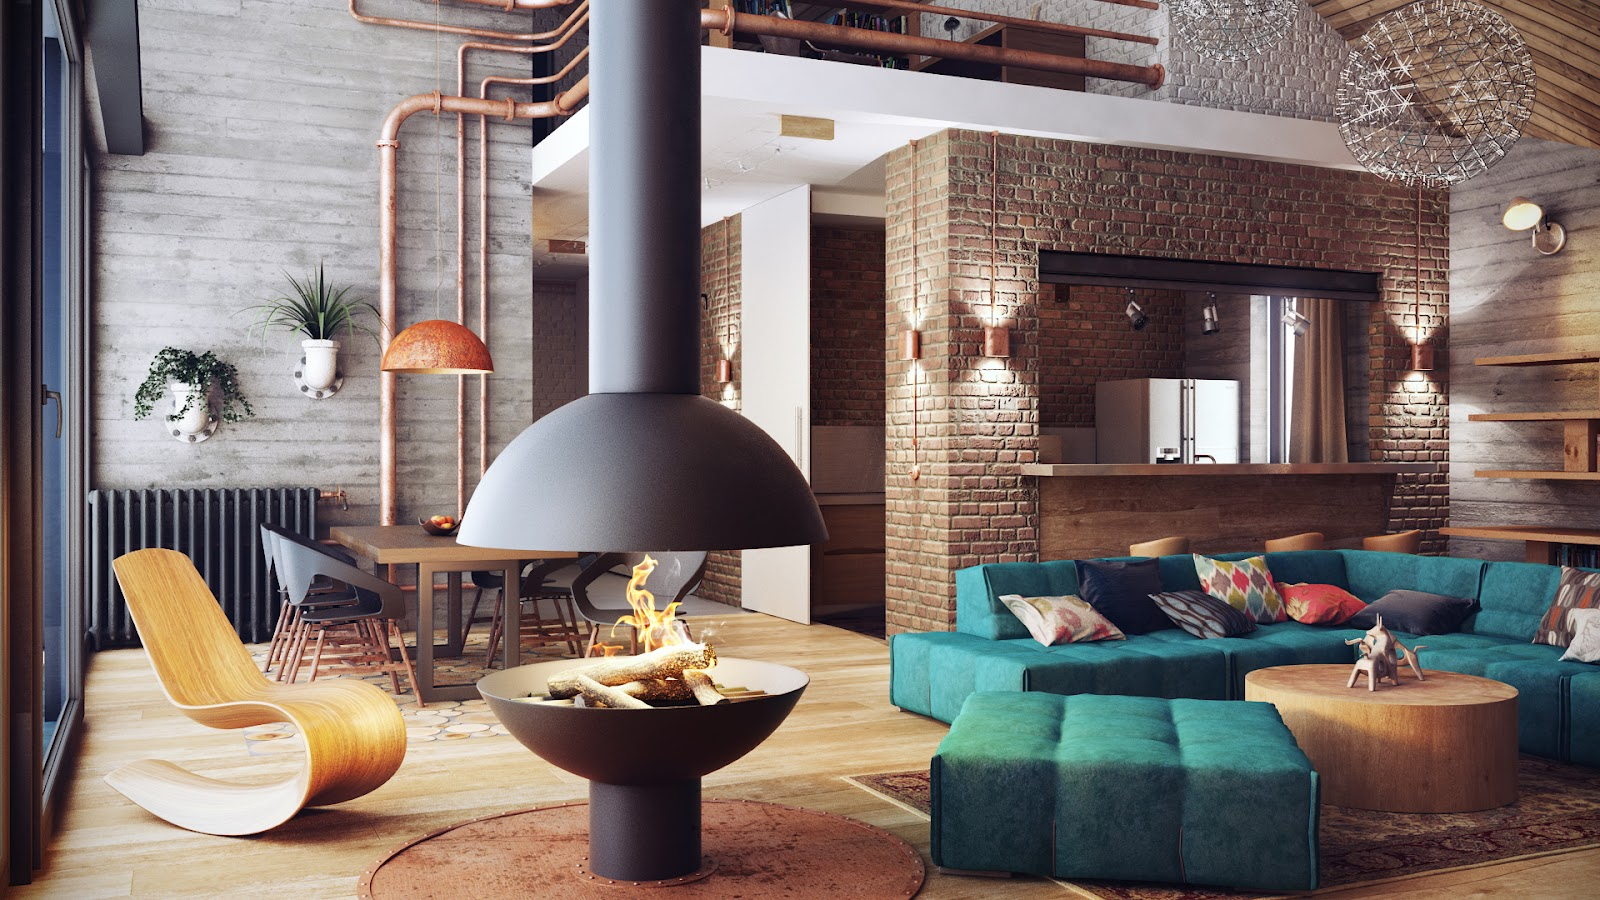 16687-the-superb-cute-inspiration-loft-interior-design